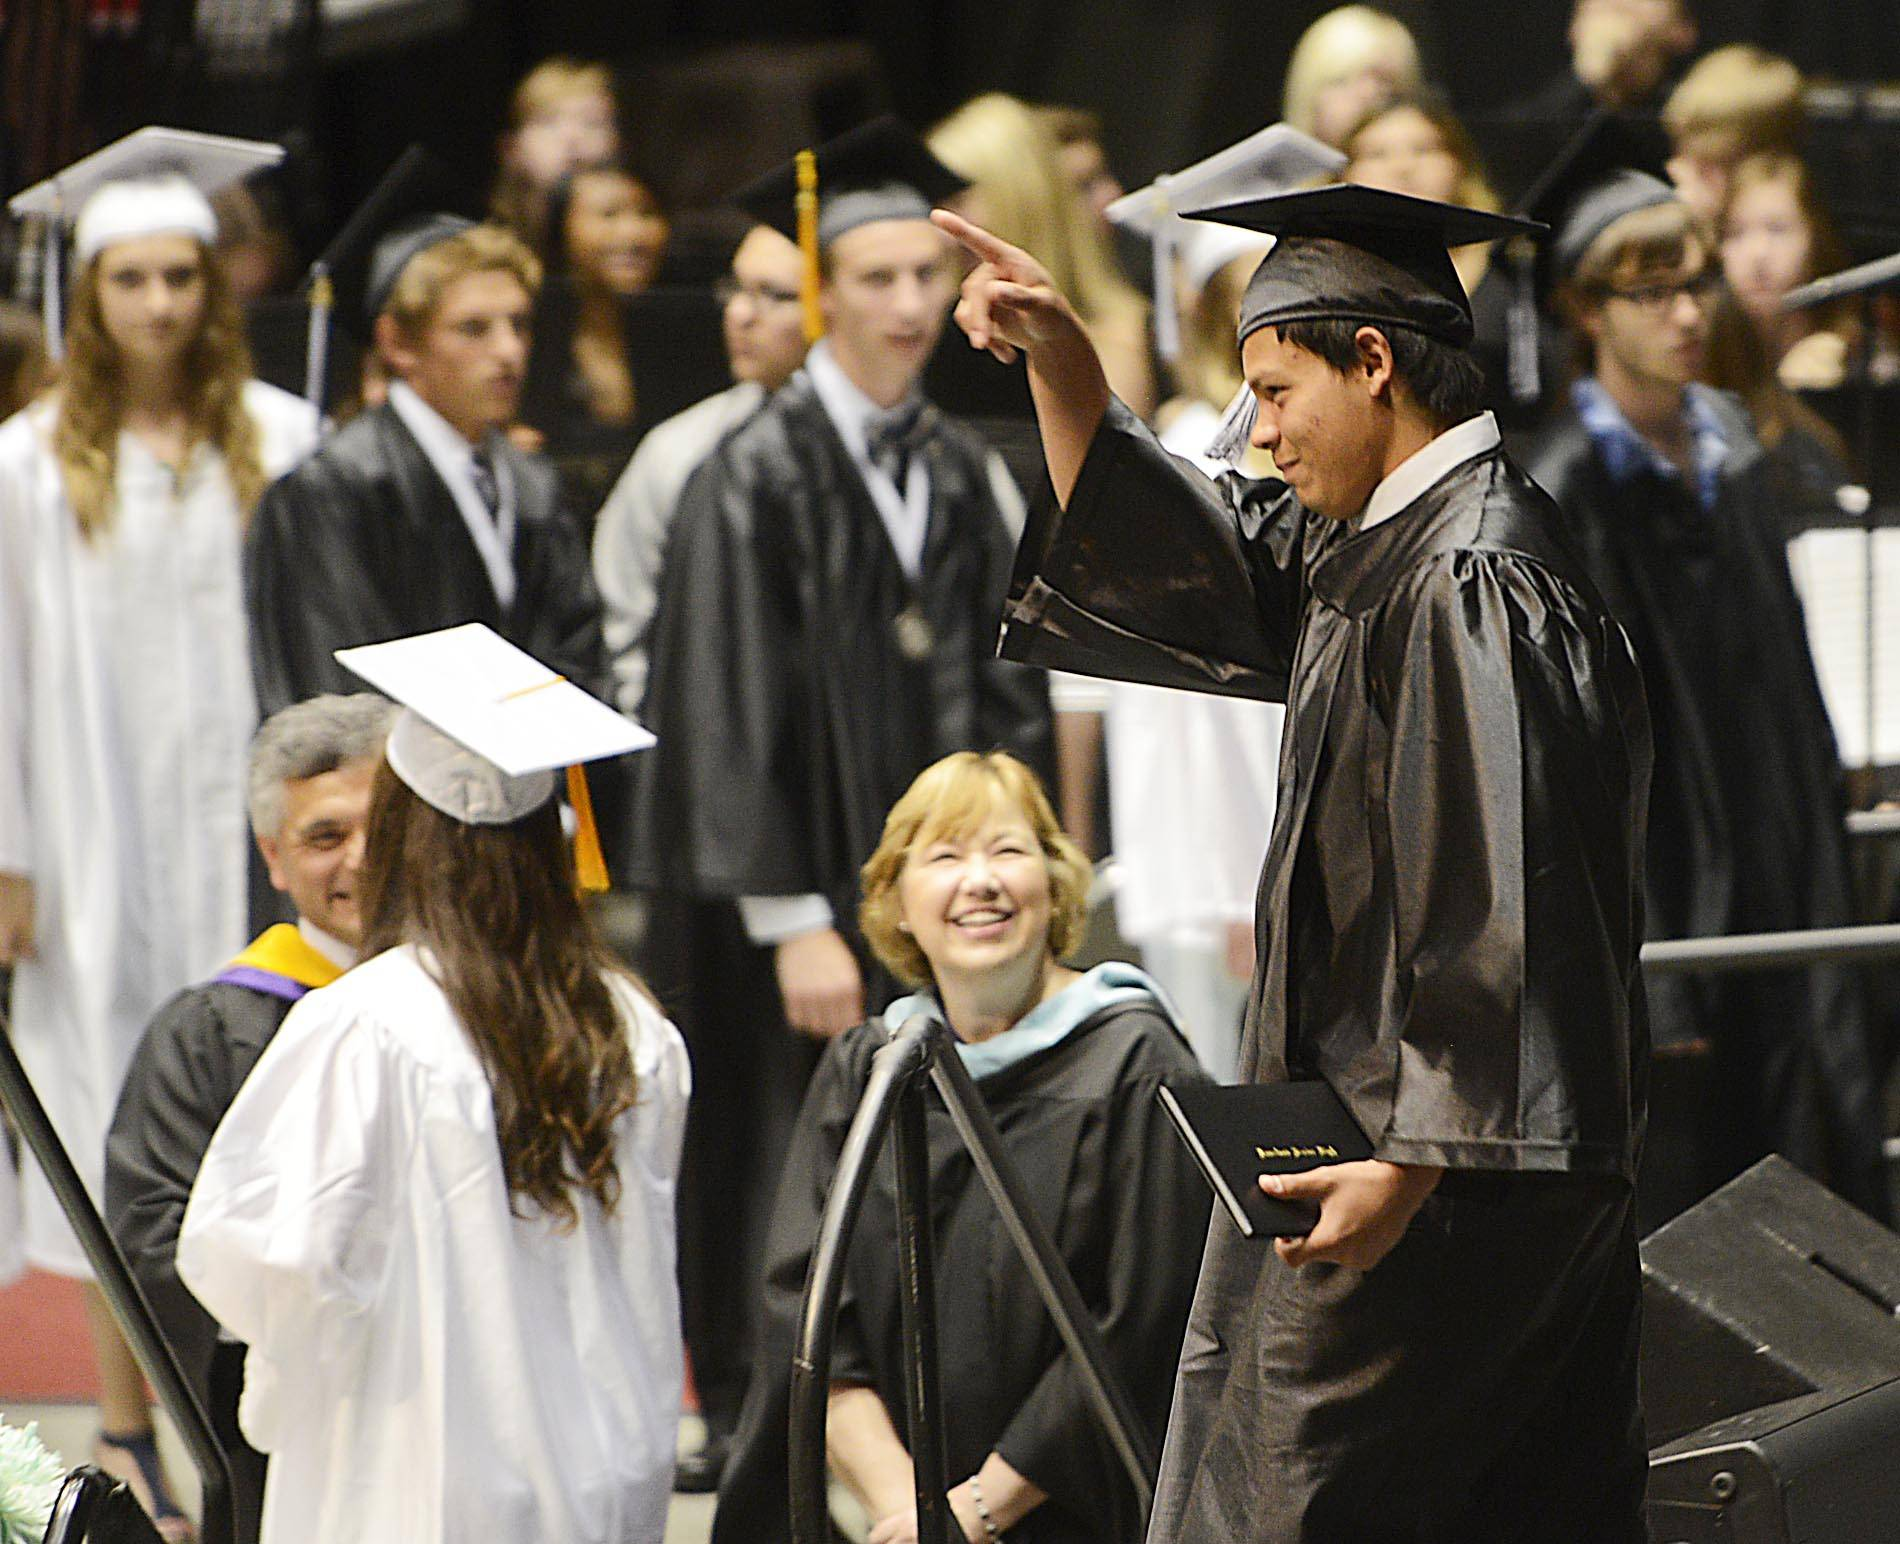 Graduate Juan Delgado points to his family after receiving his diploma at the Kaneland High School 2014 commencement exercises Sunday in Dekalb.